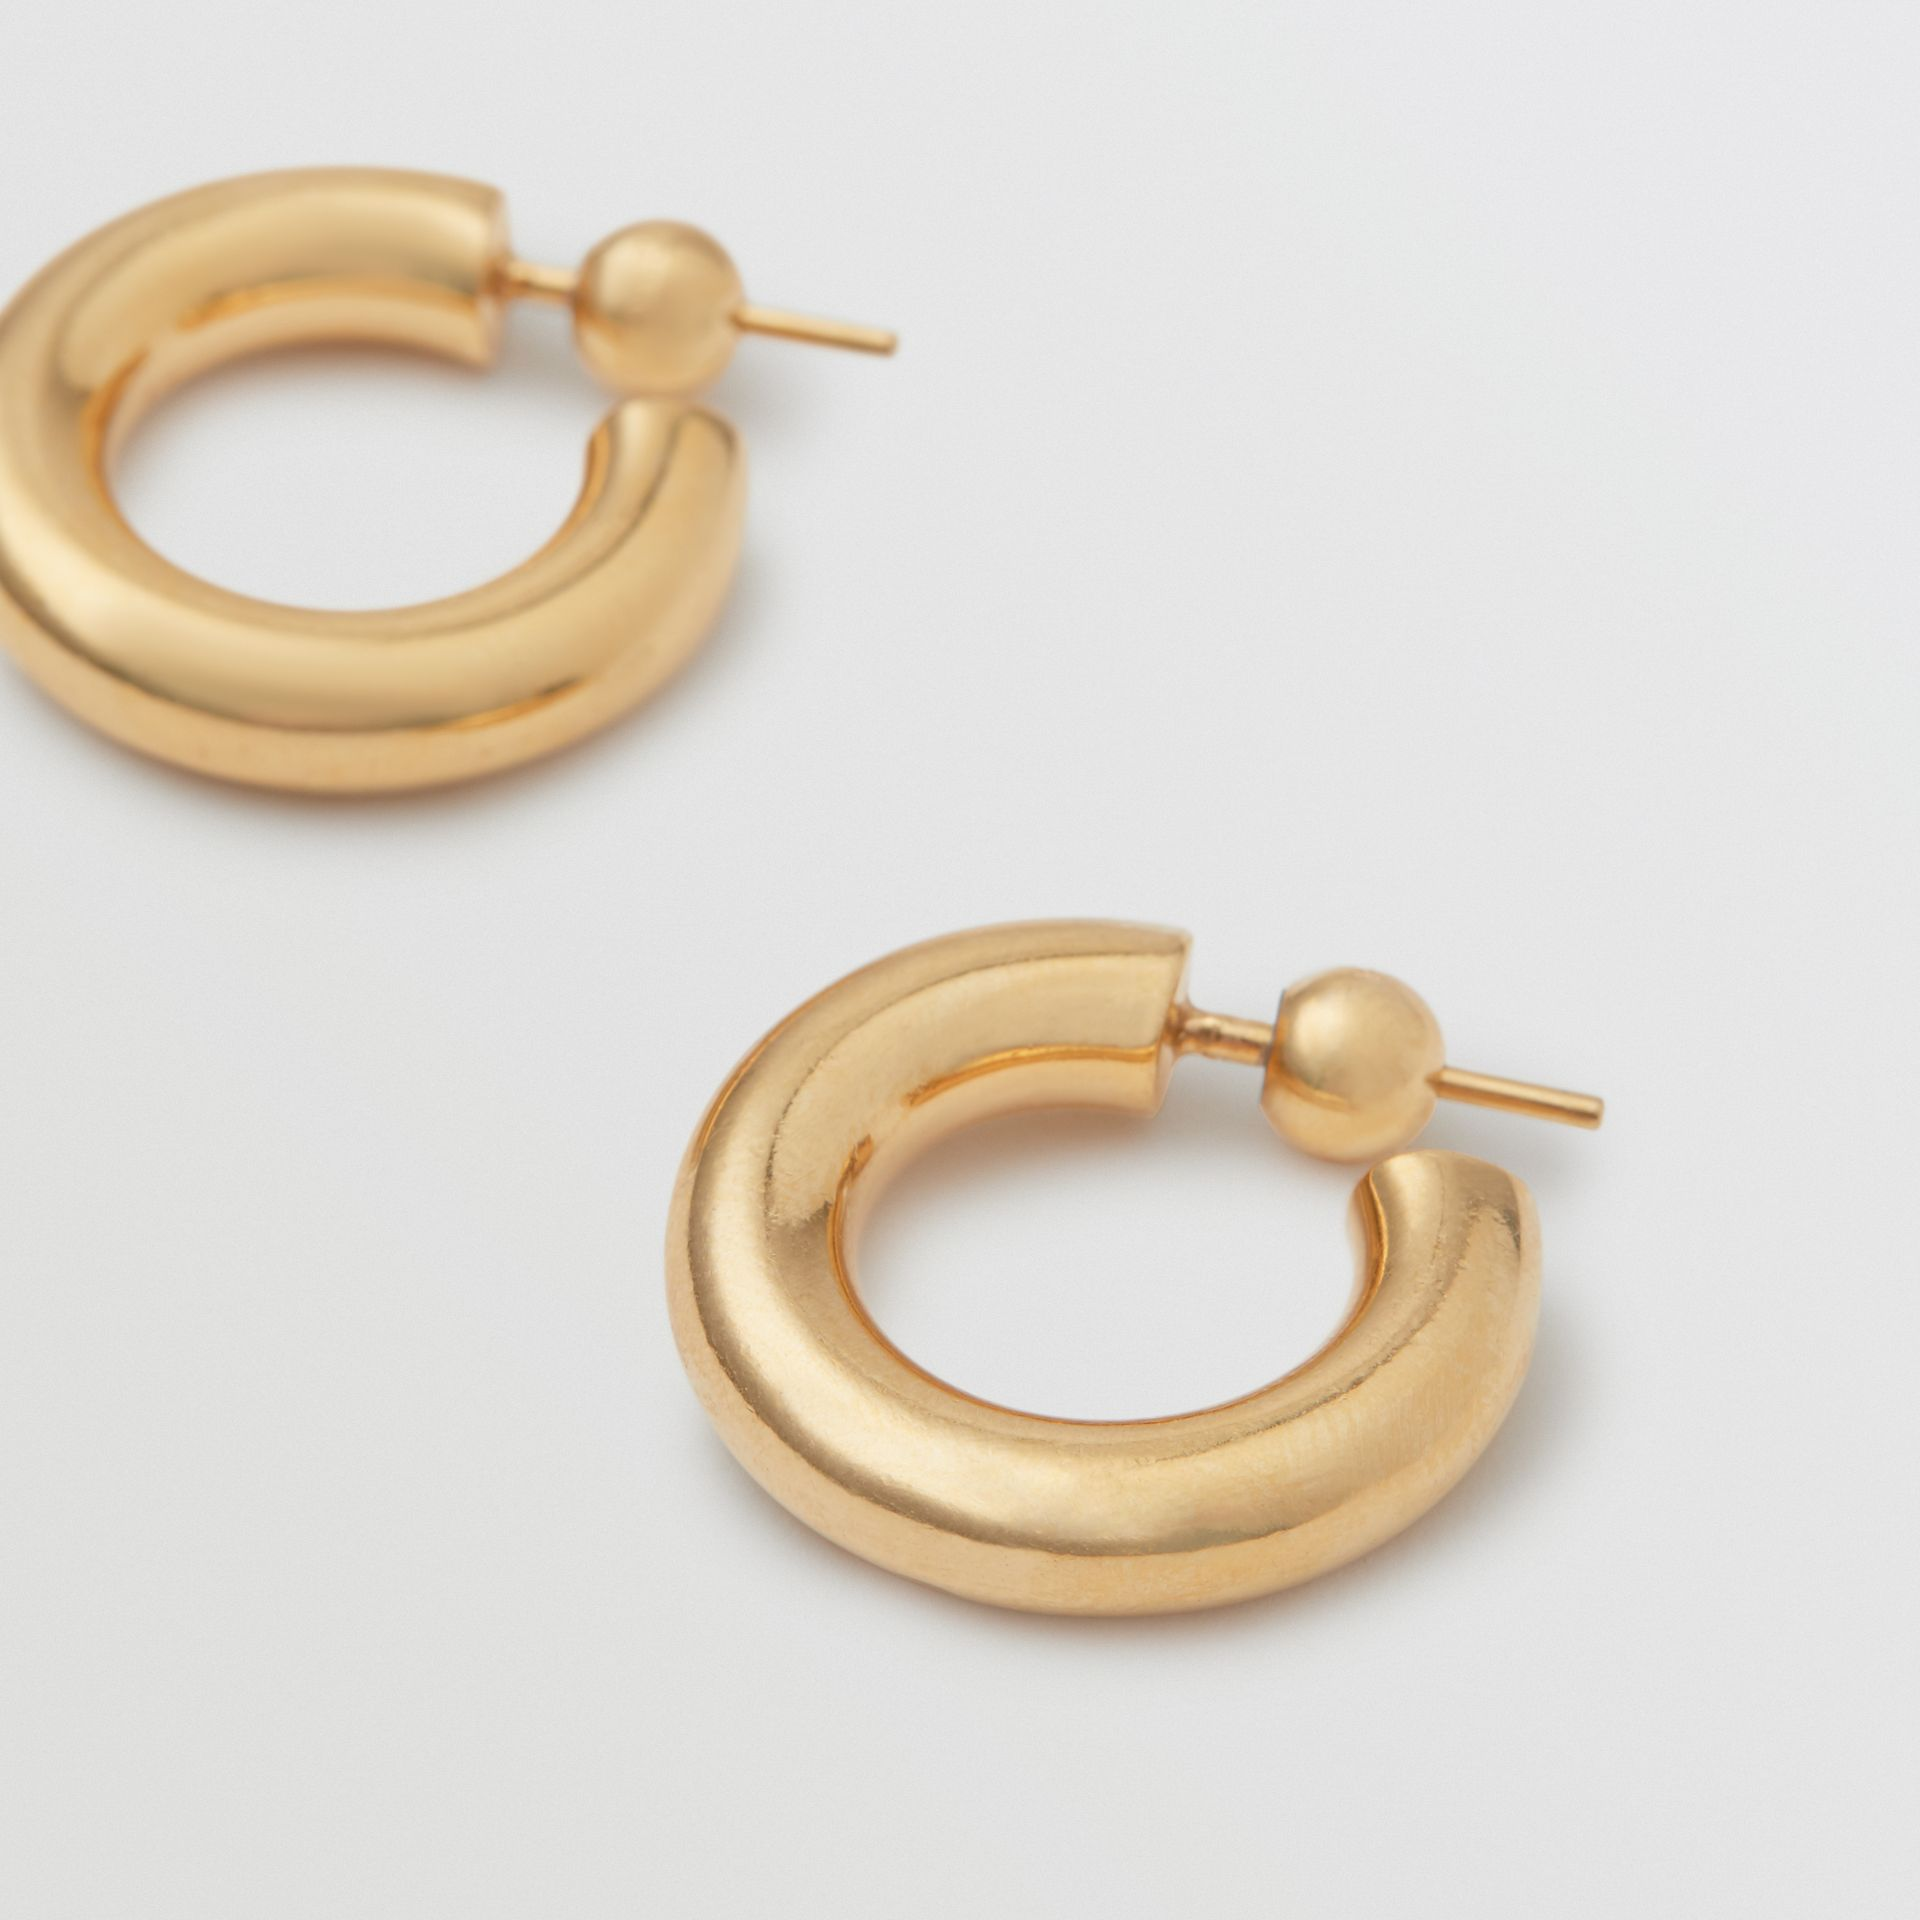 Gold-plated Hoop Earrings in Light - Women | Burberry Singapore - gallery image 1